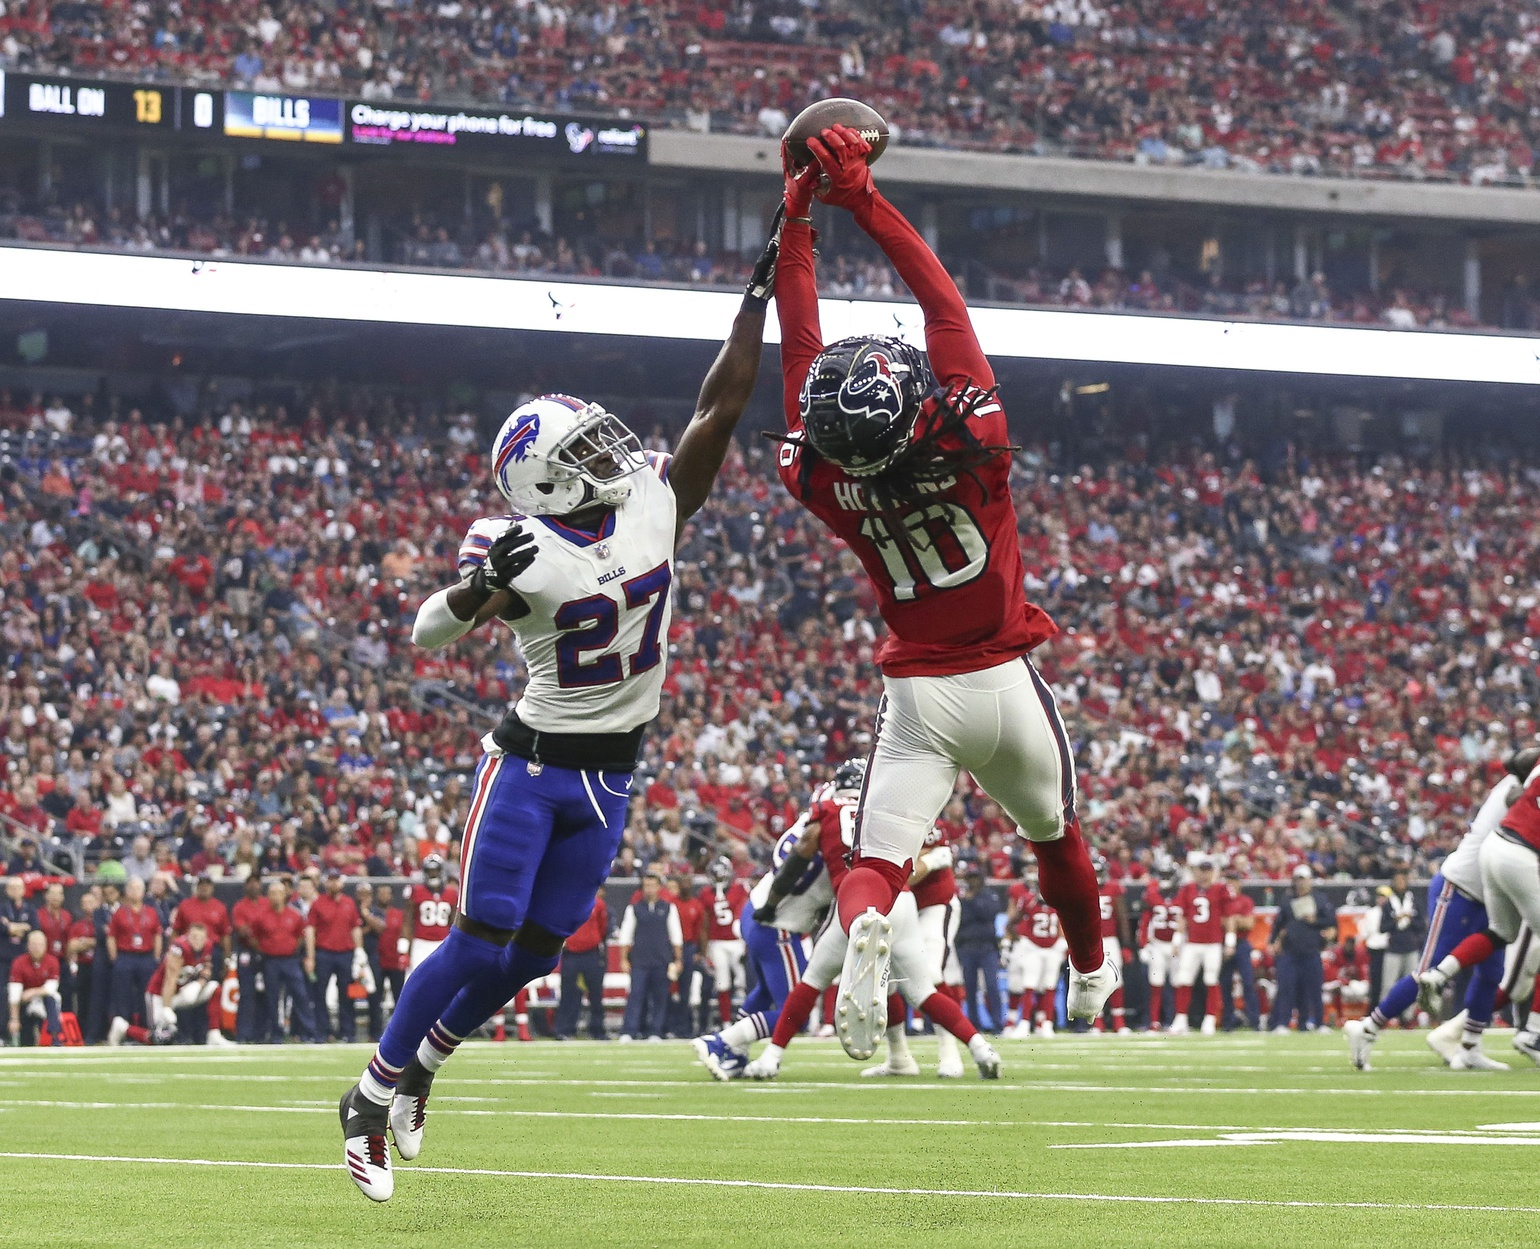 Ranking the NFL's top receivers in contested-catch situations